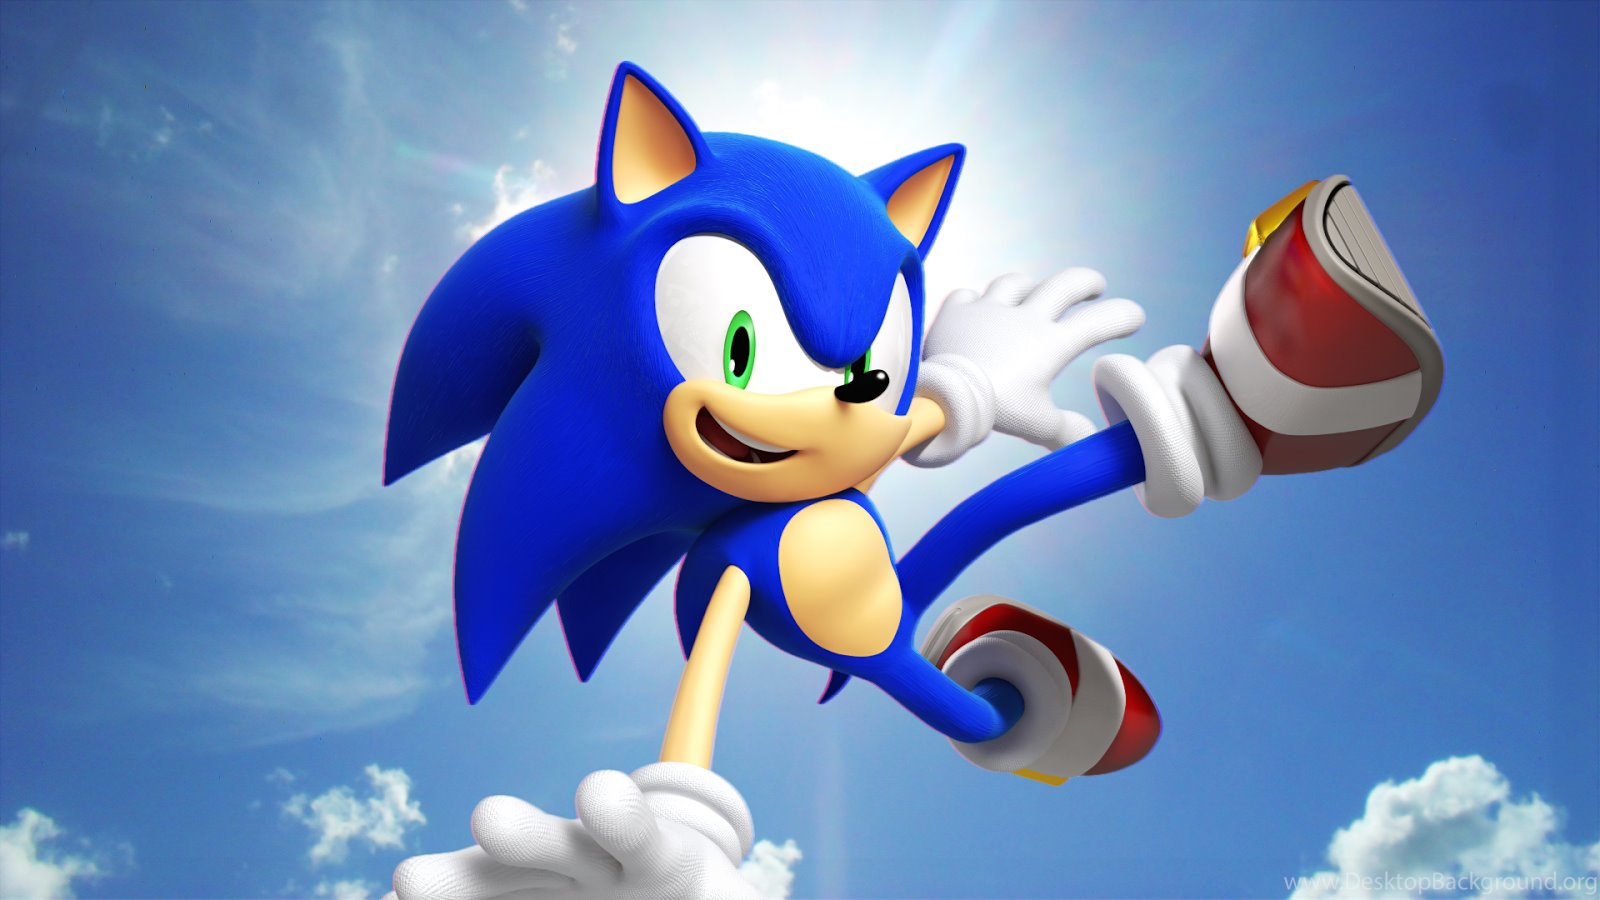 Cool Sonic The Hedgehog Wallpapers Bing Images Desktop Background